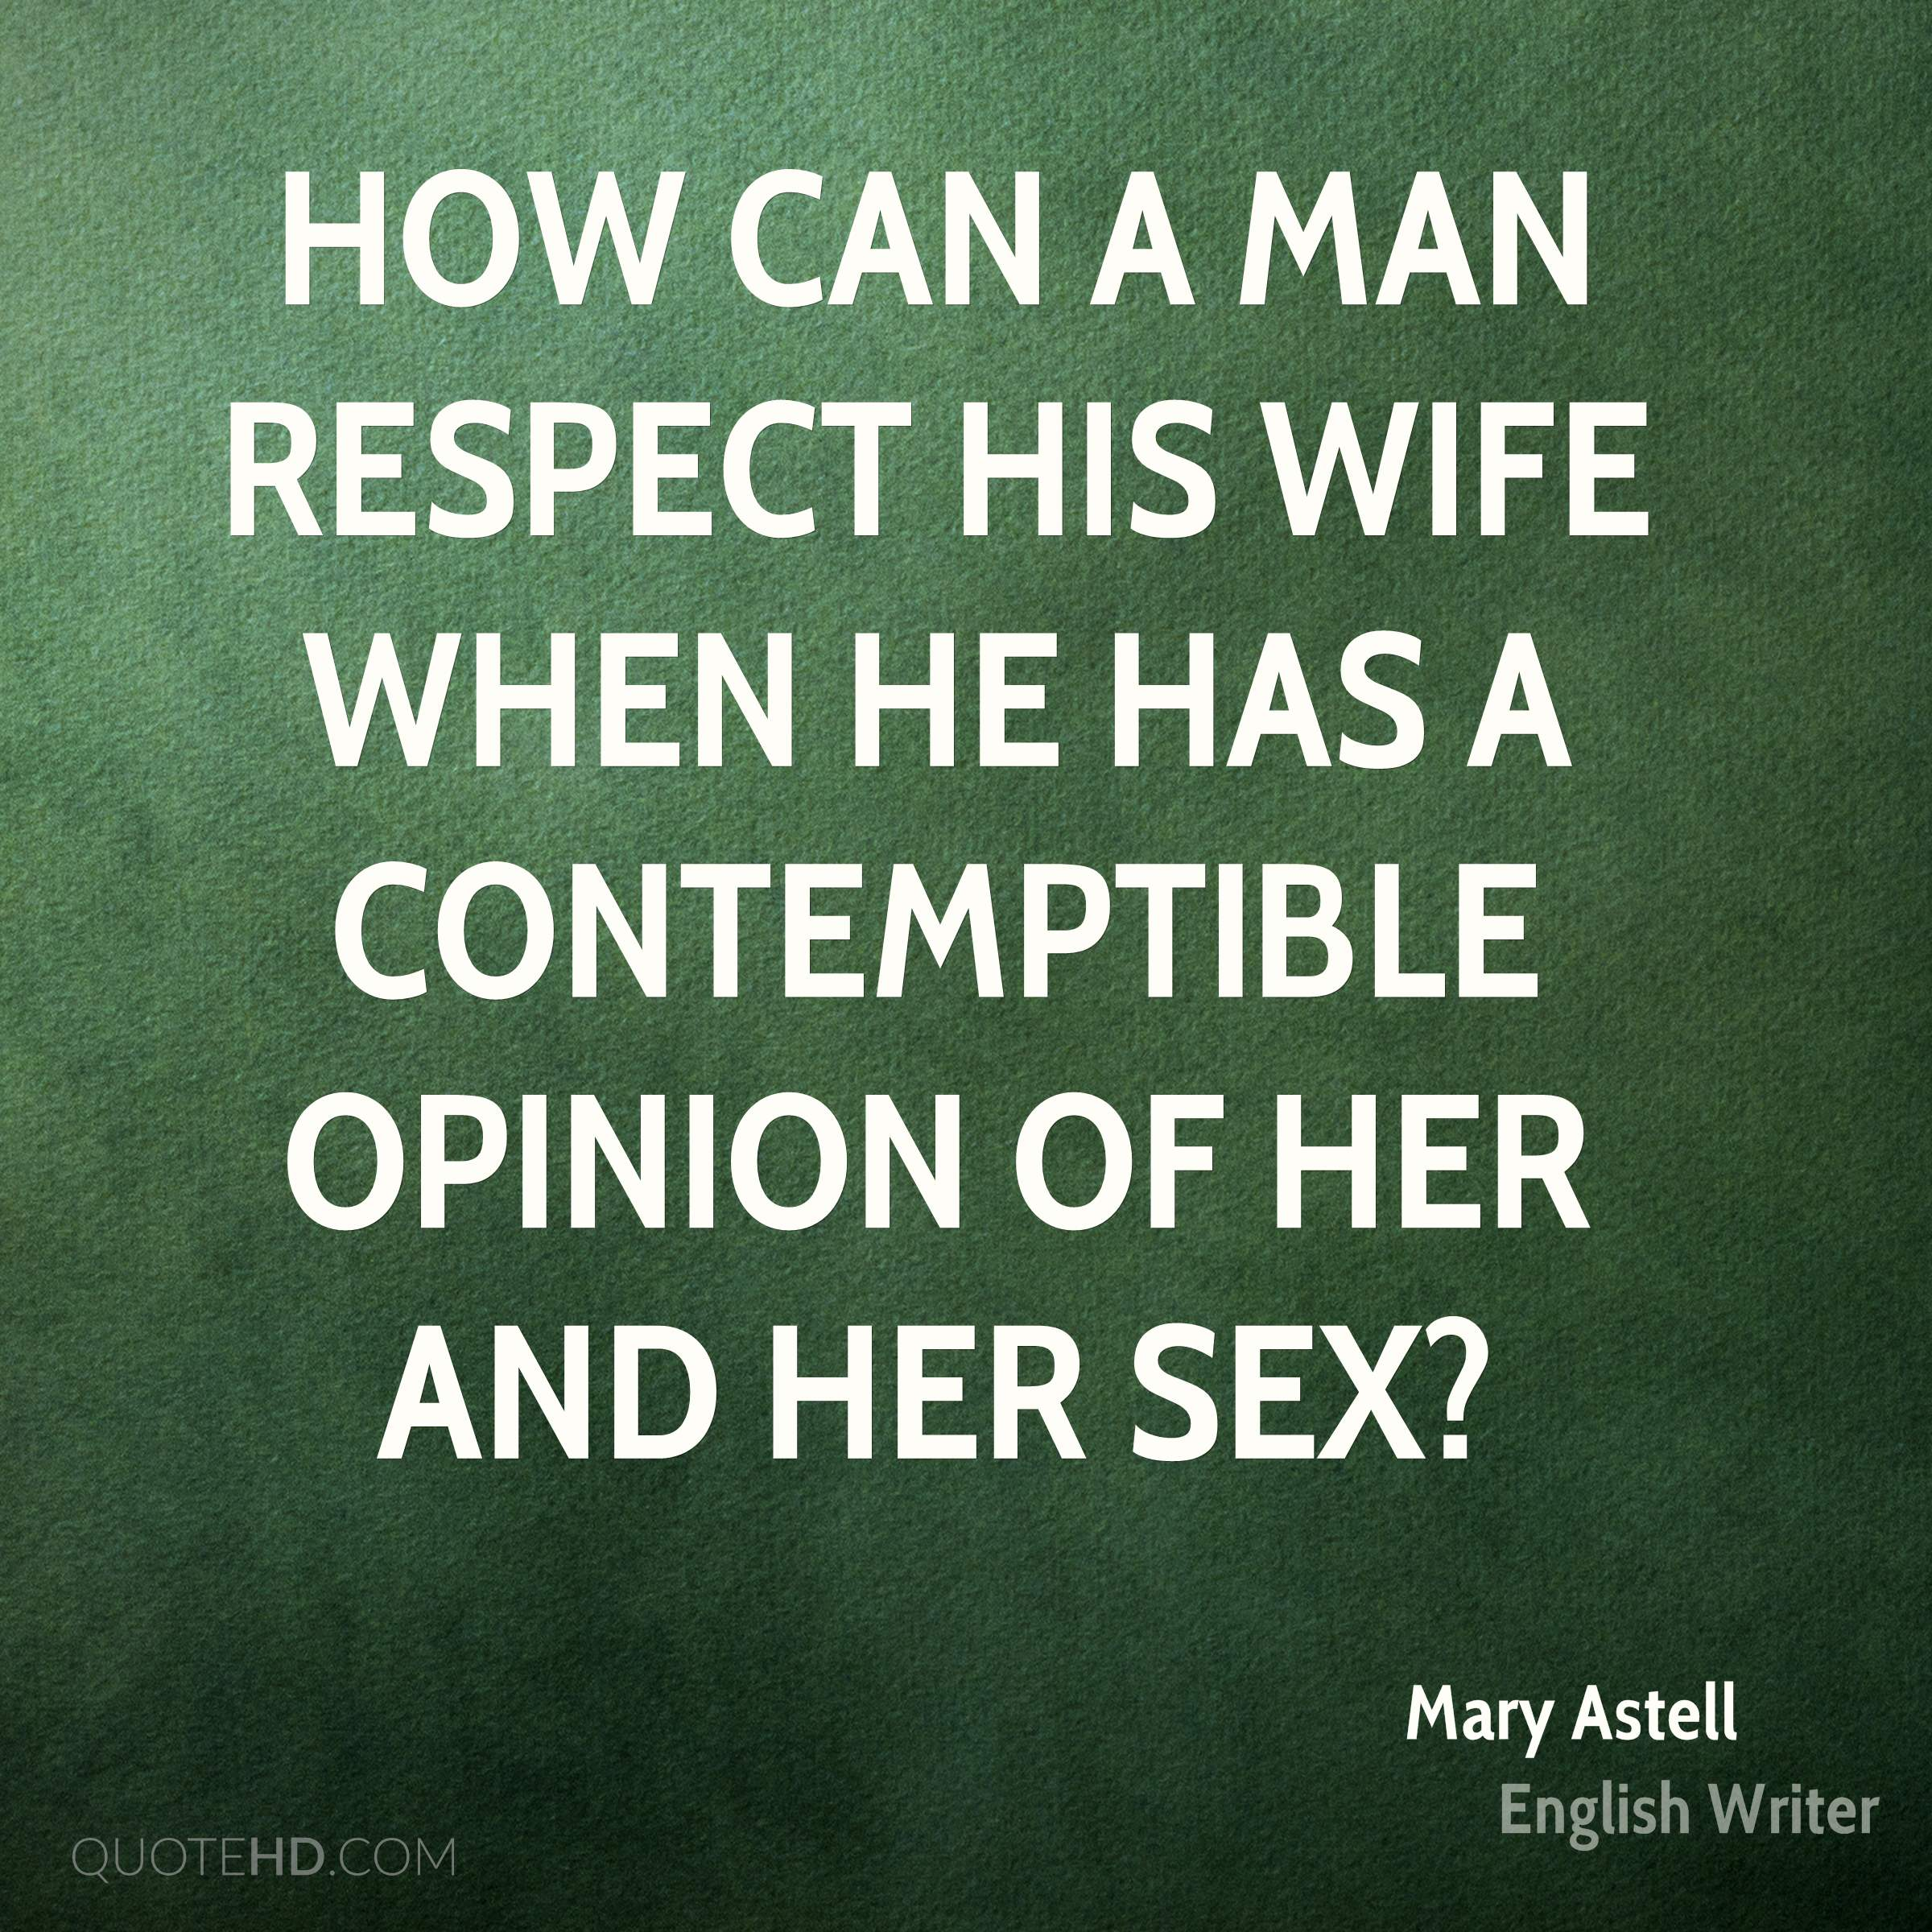 How can a Man respect his Wife when he has a contemptible Opinion of her and her Sex?